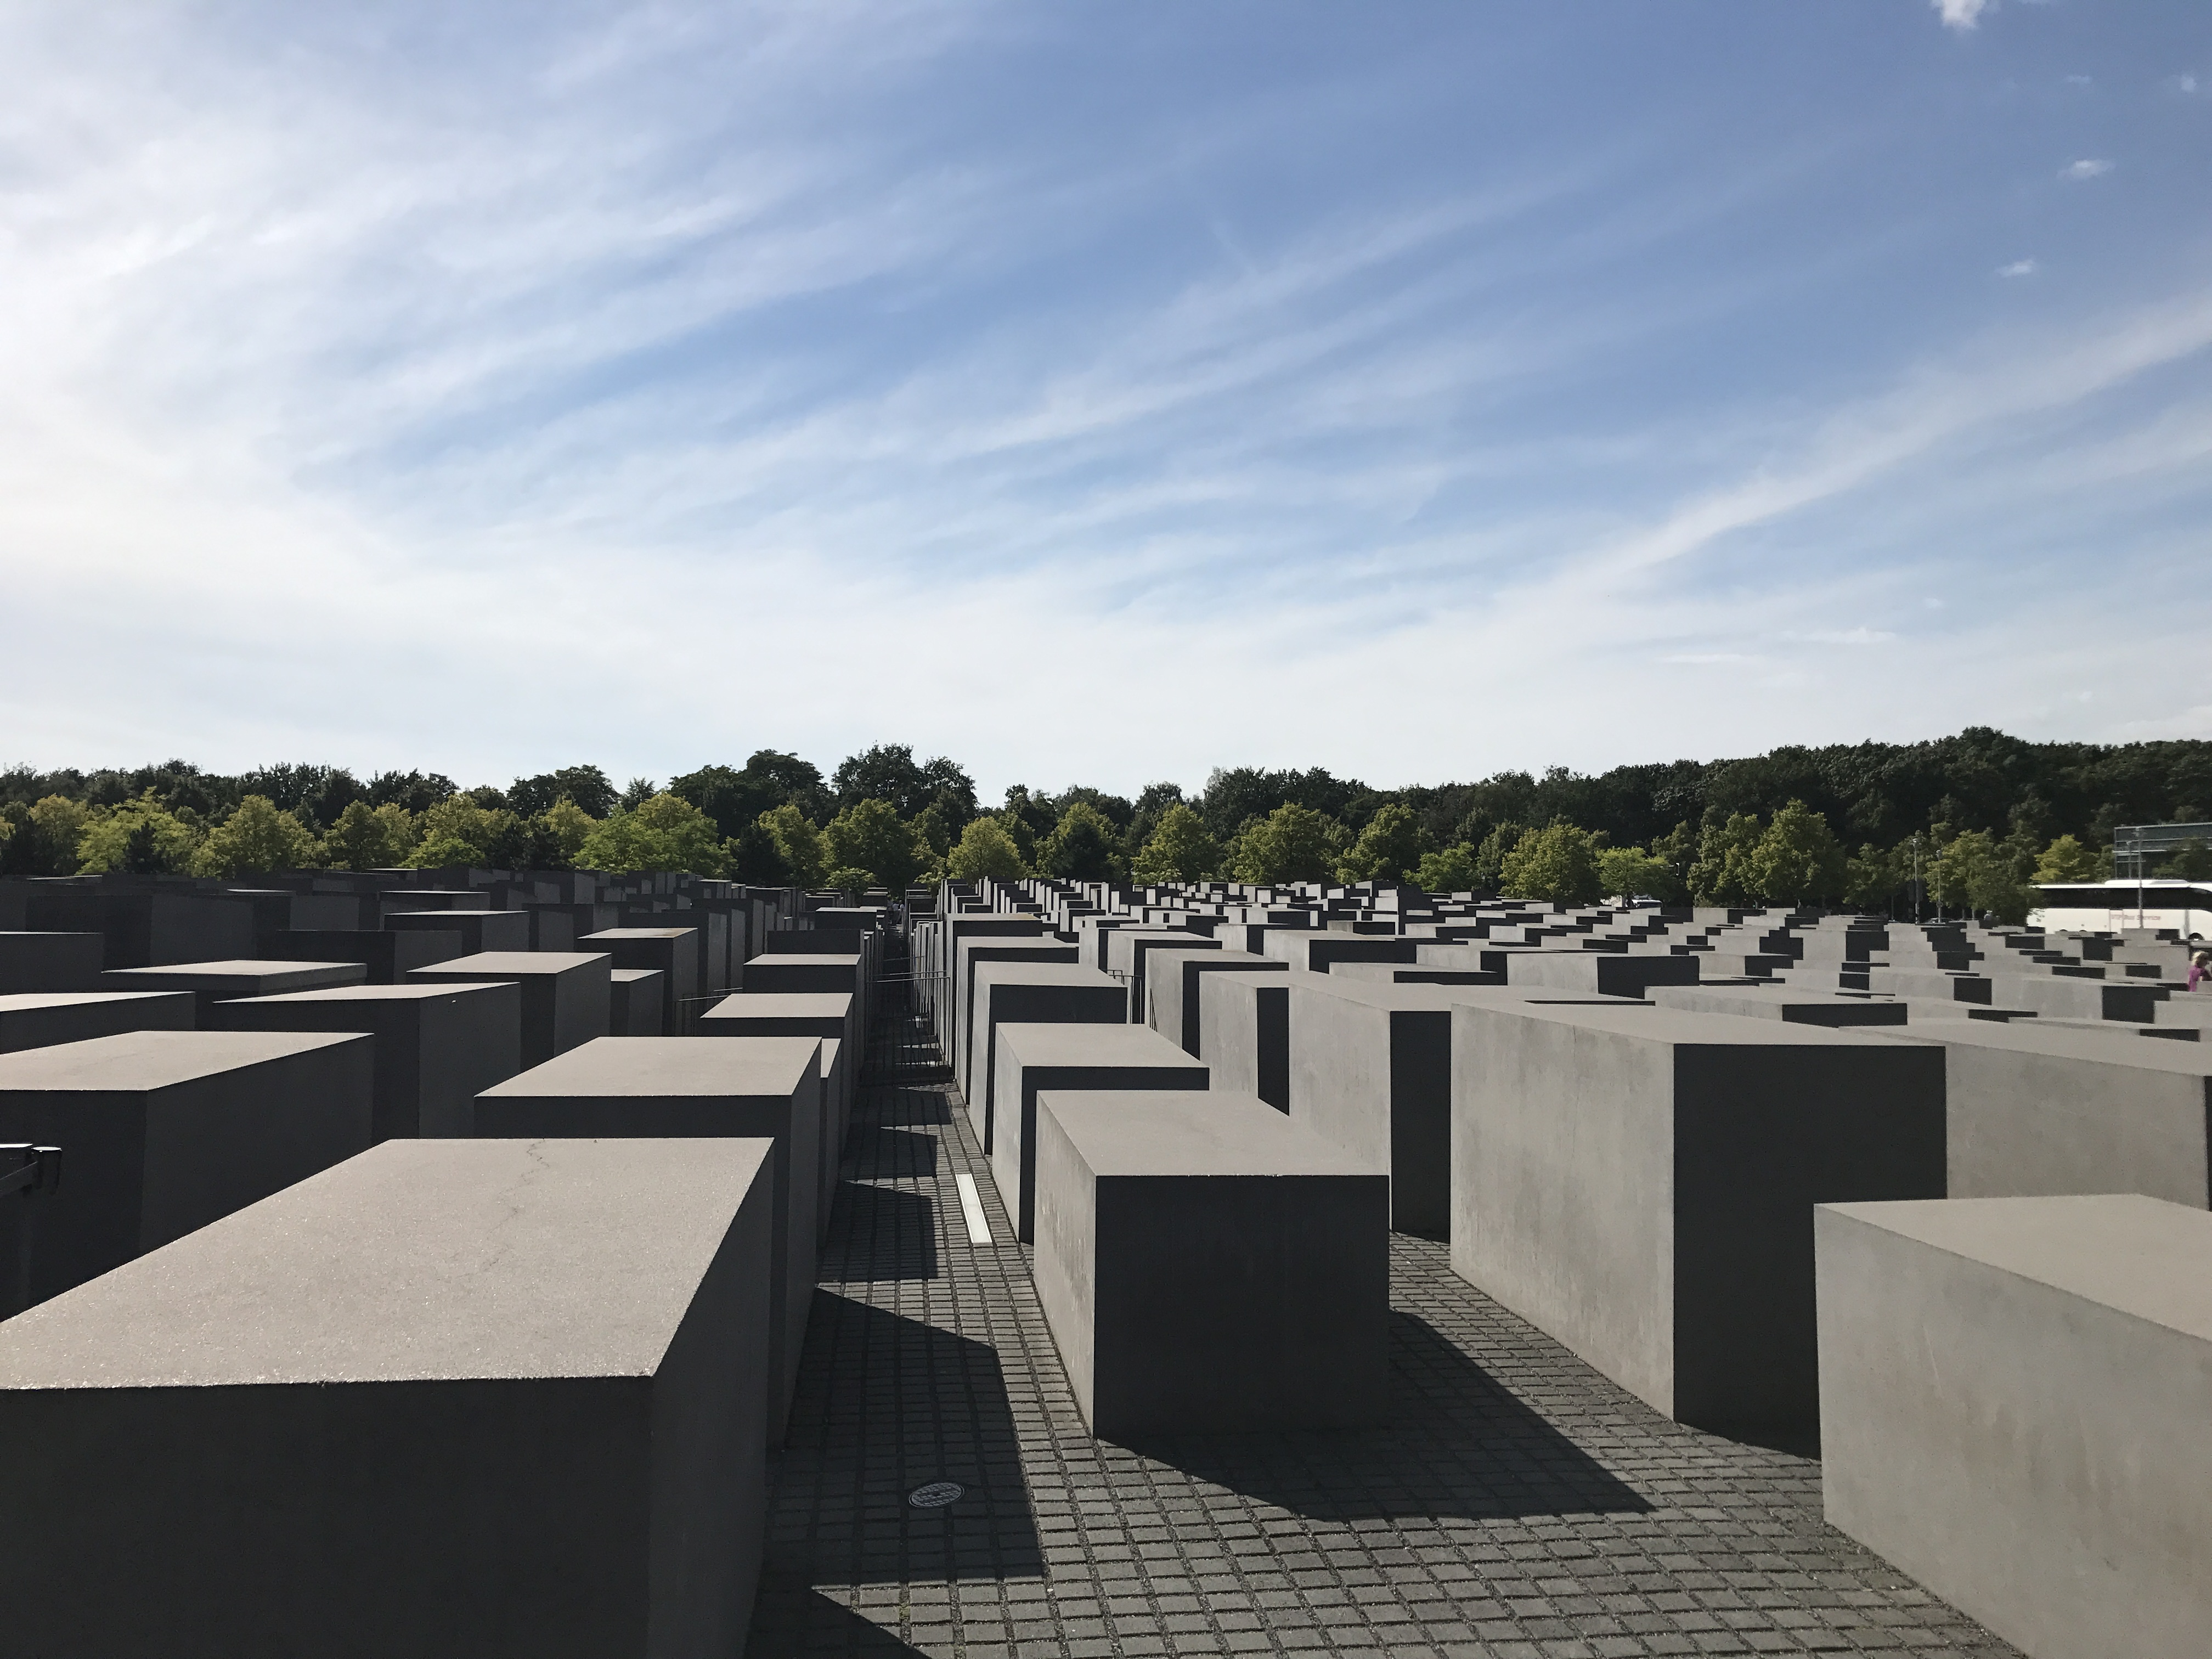 The Memorial to the Murdered Jews of Europe. The meaning of the design is meant to be open to interpretation and the number of blocks is not representative of anything, it's just what fit there. For reference, it's okay to sit on them, as approved by the Jewish architect of this memorial. It is not, however, okay to stand on them.